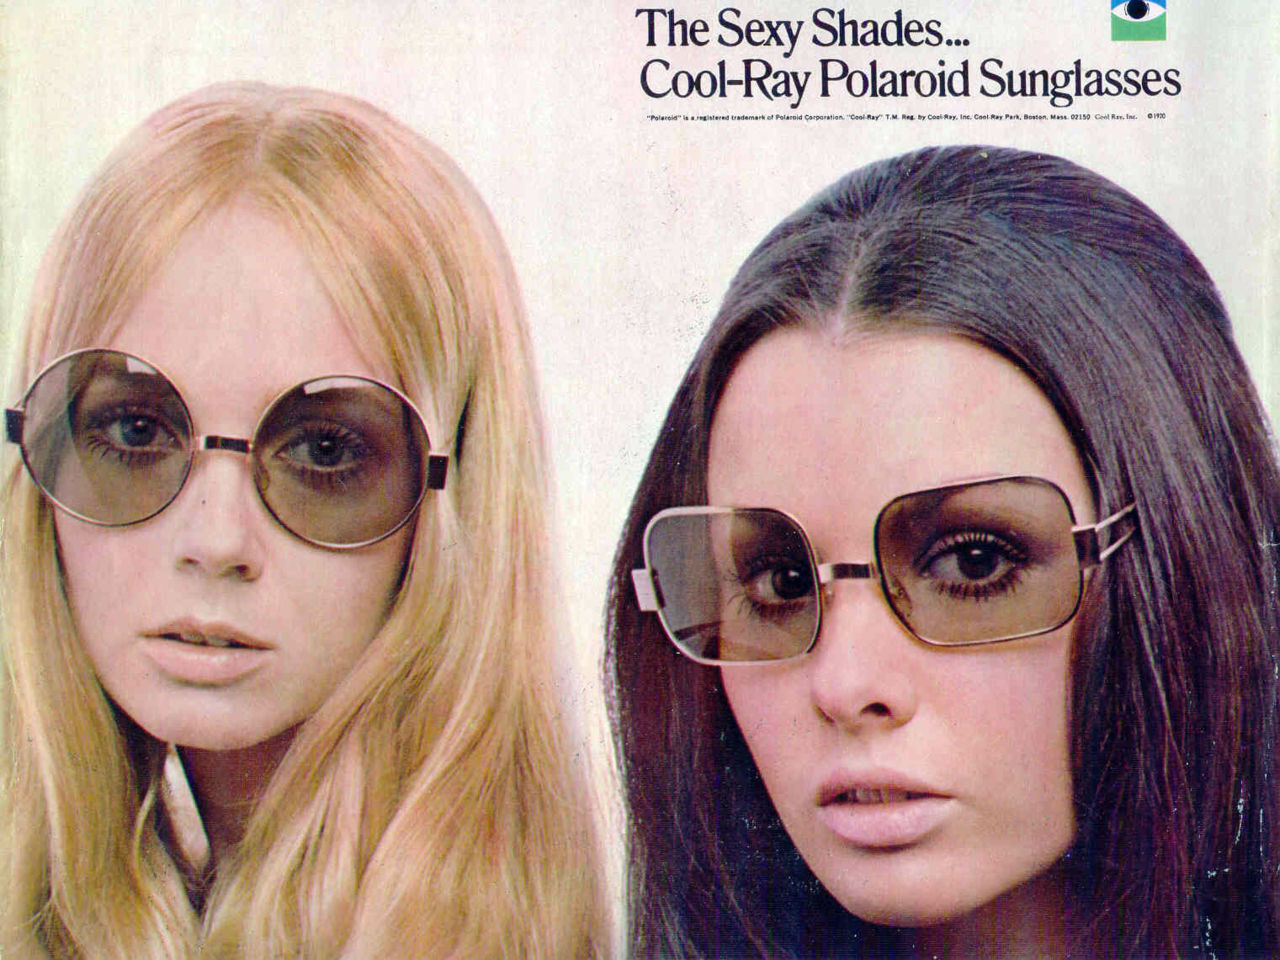 Sunglasses c. 1970s